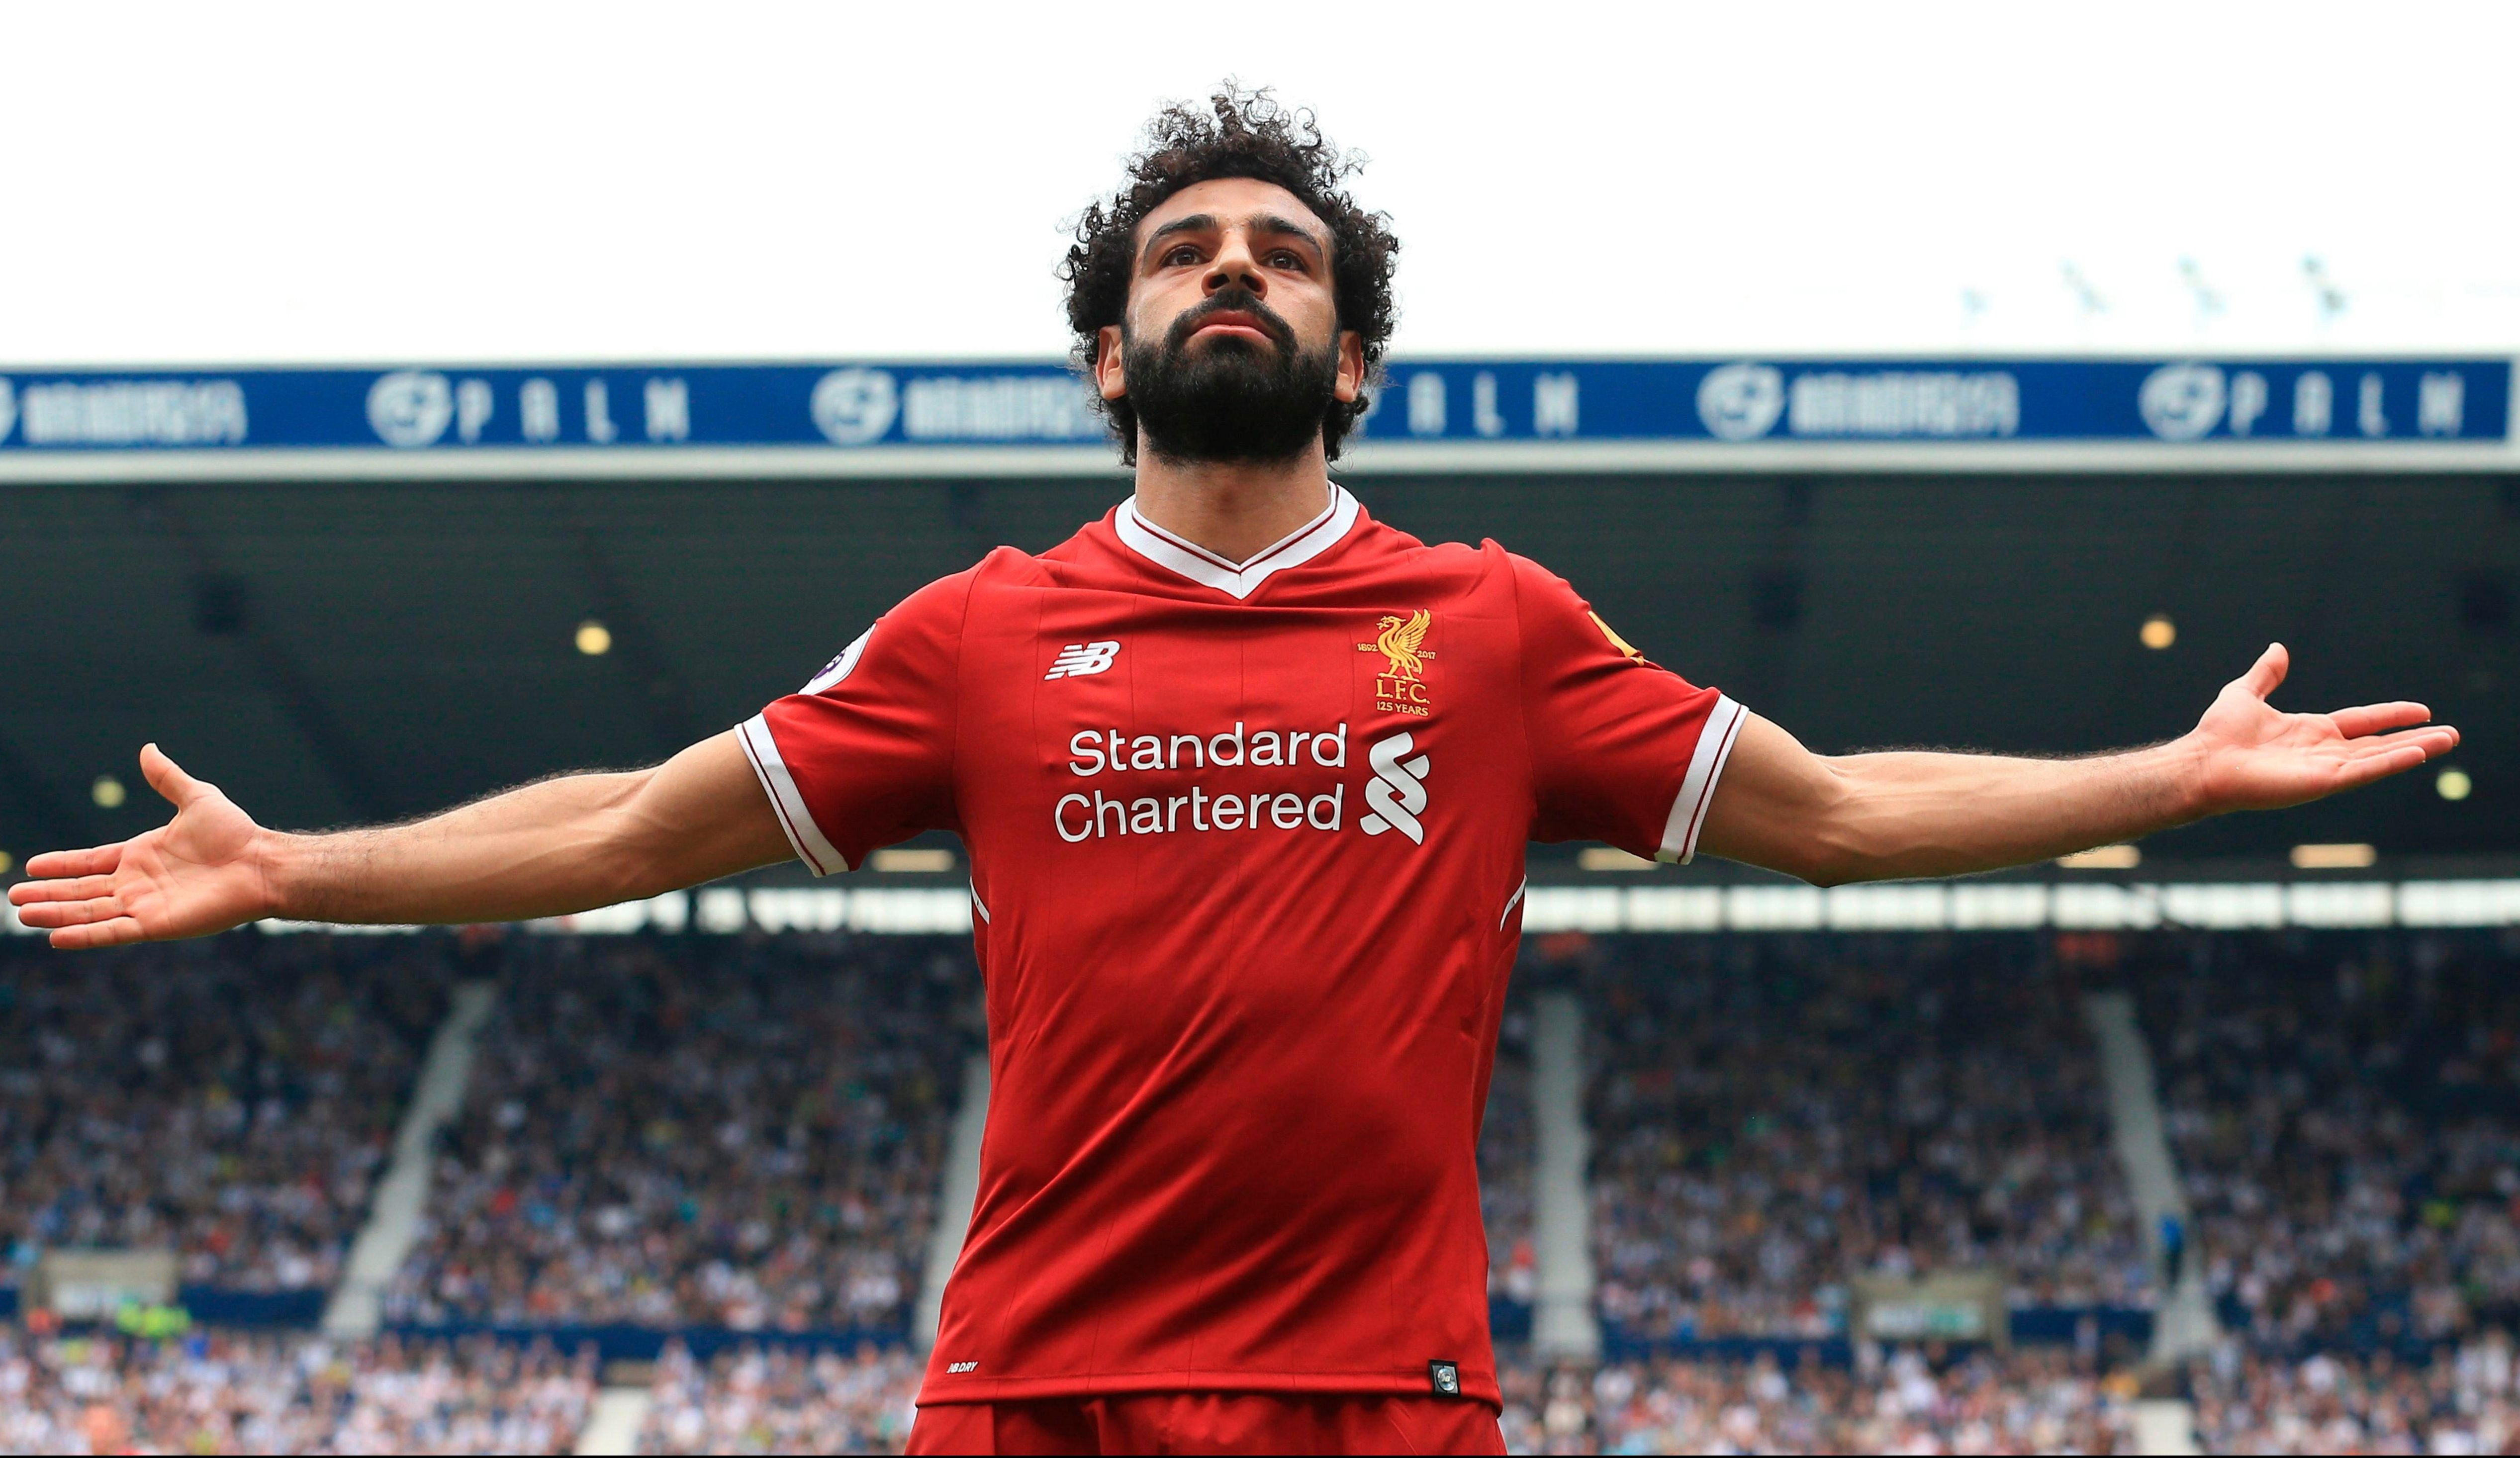 Anyone who is marginally ahead of this man in any area this season deserves recognition